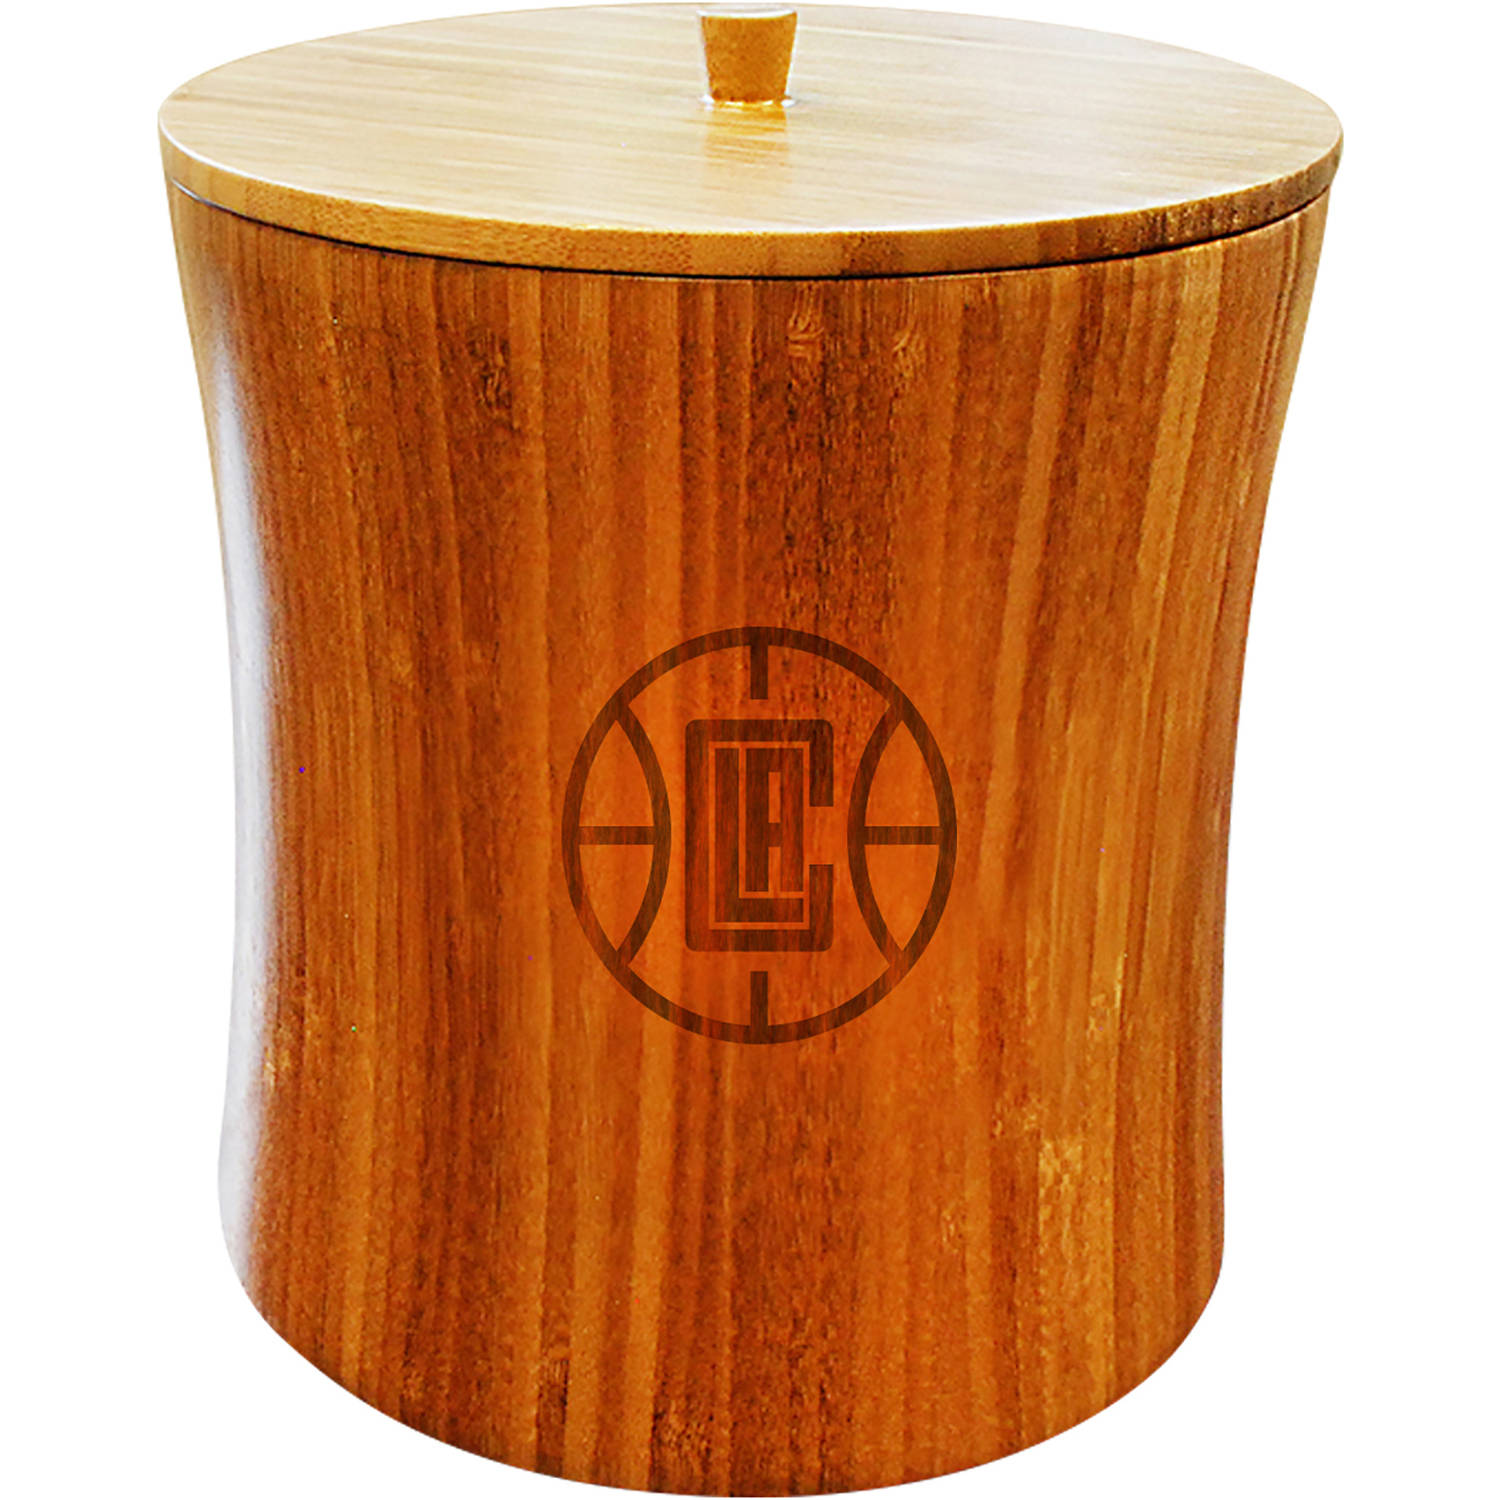 NBA Team Engraved Bamboo Ice Bucket